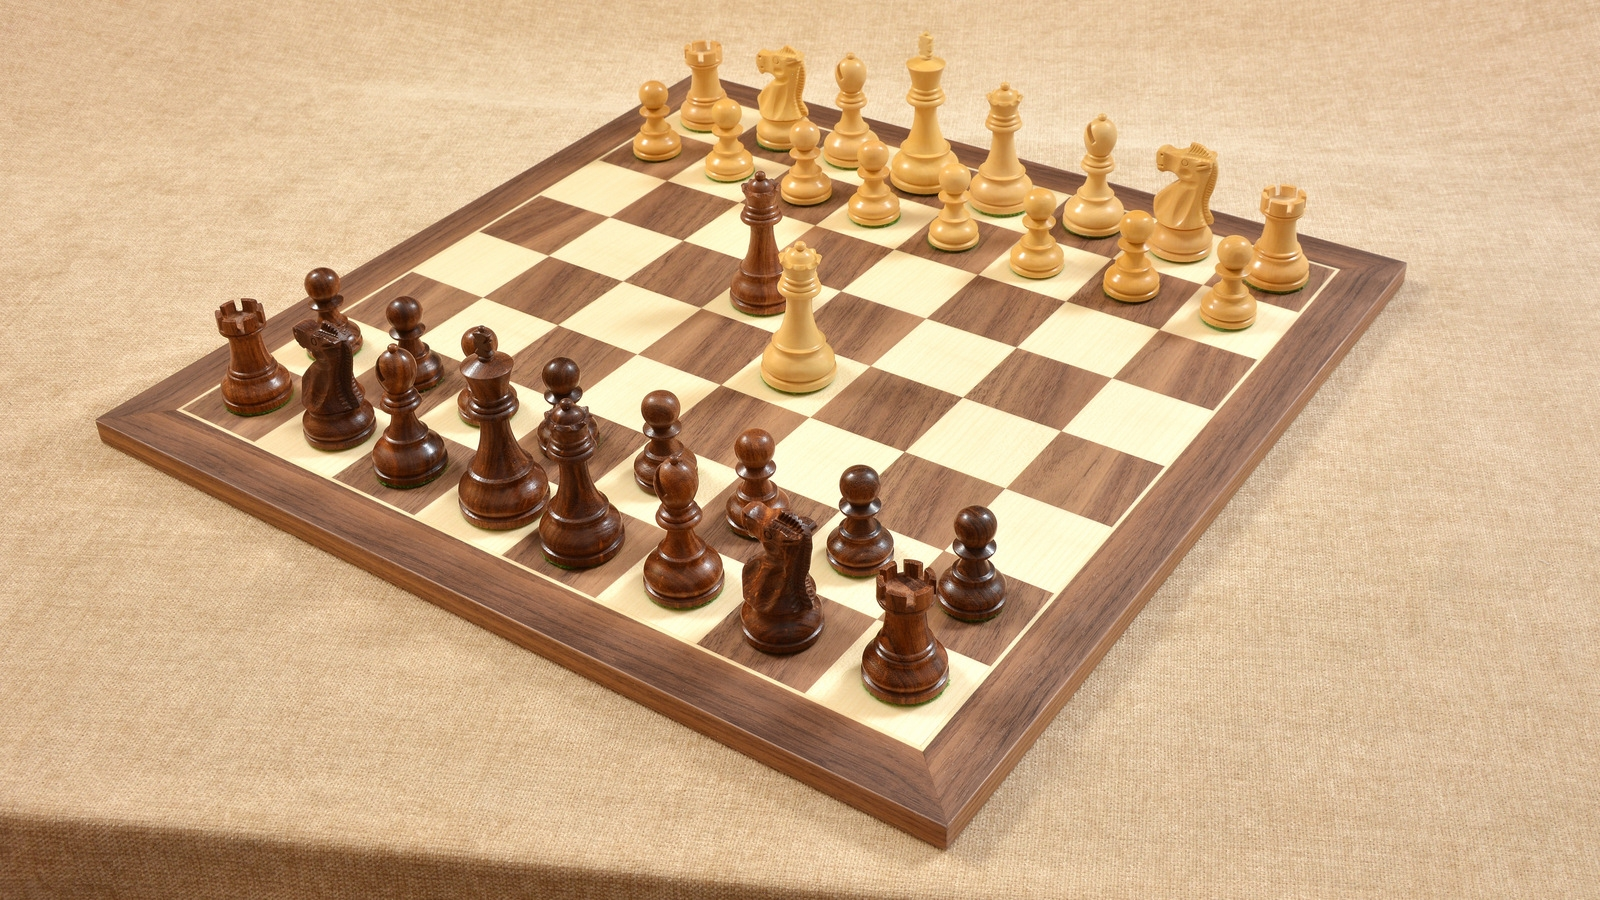 Combo of Reproduced 1972 Reykjavik Staunton Chess Pieces & Walnut Maple Chessboard - 3.7""